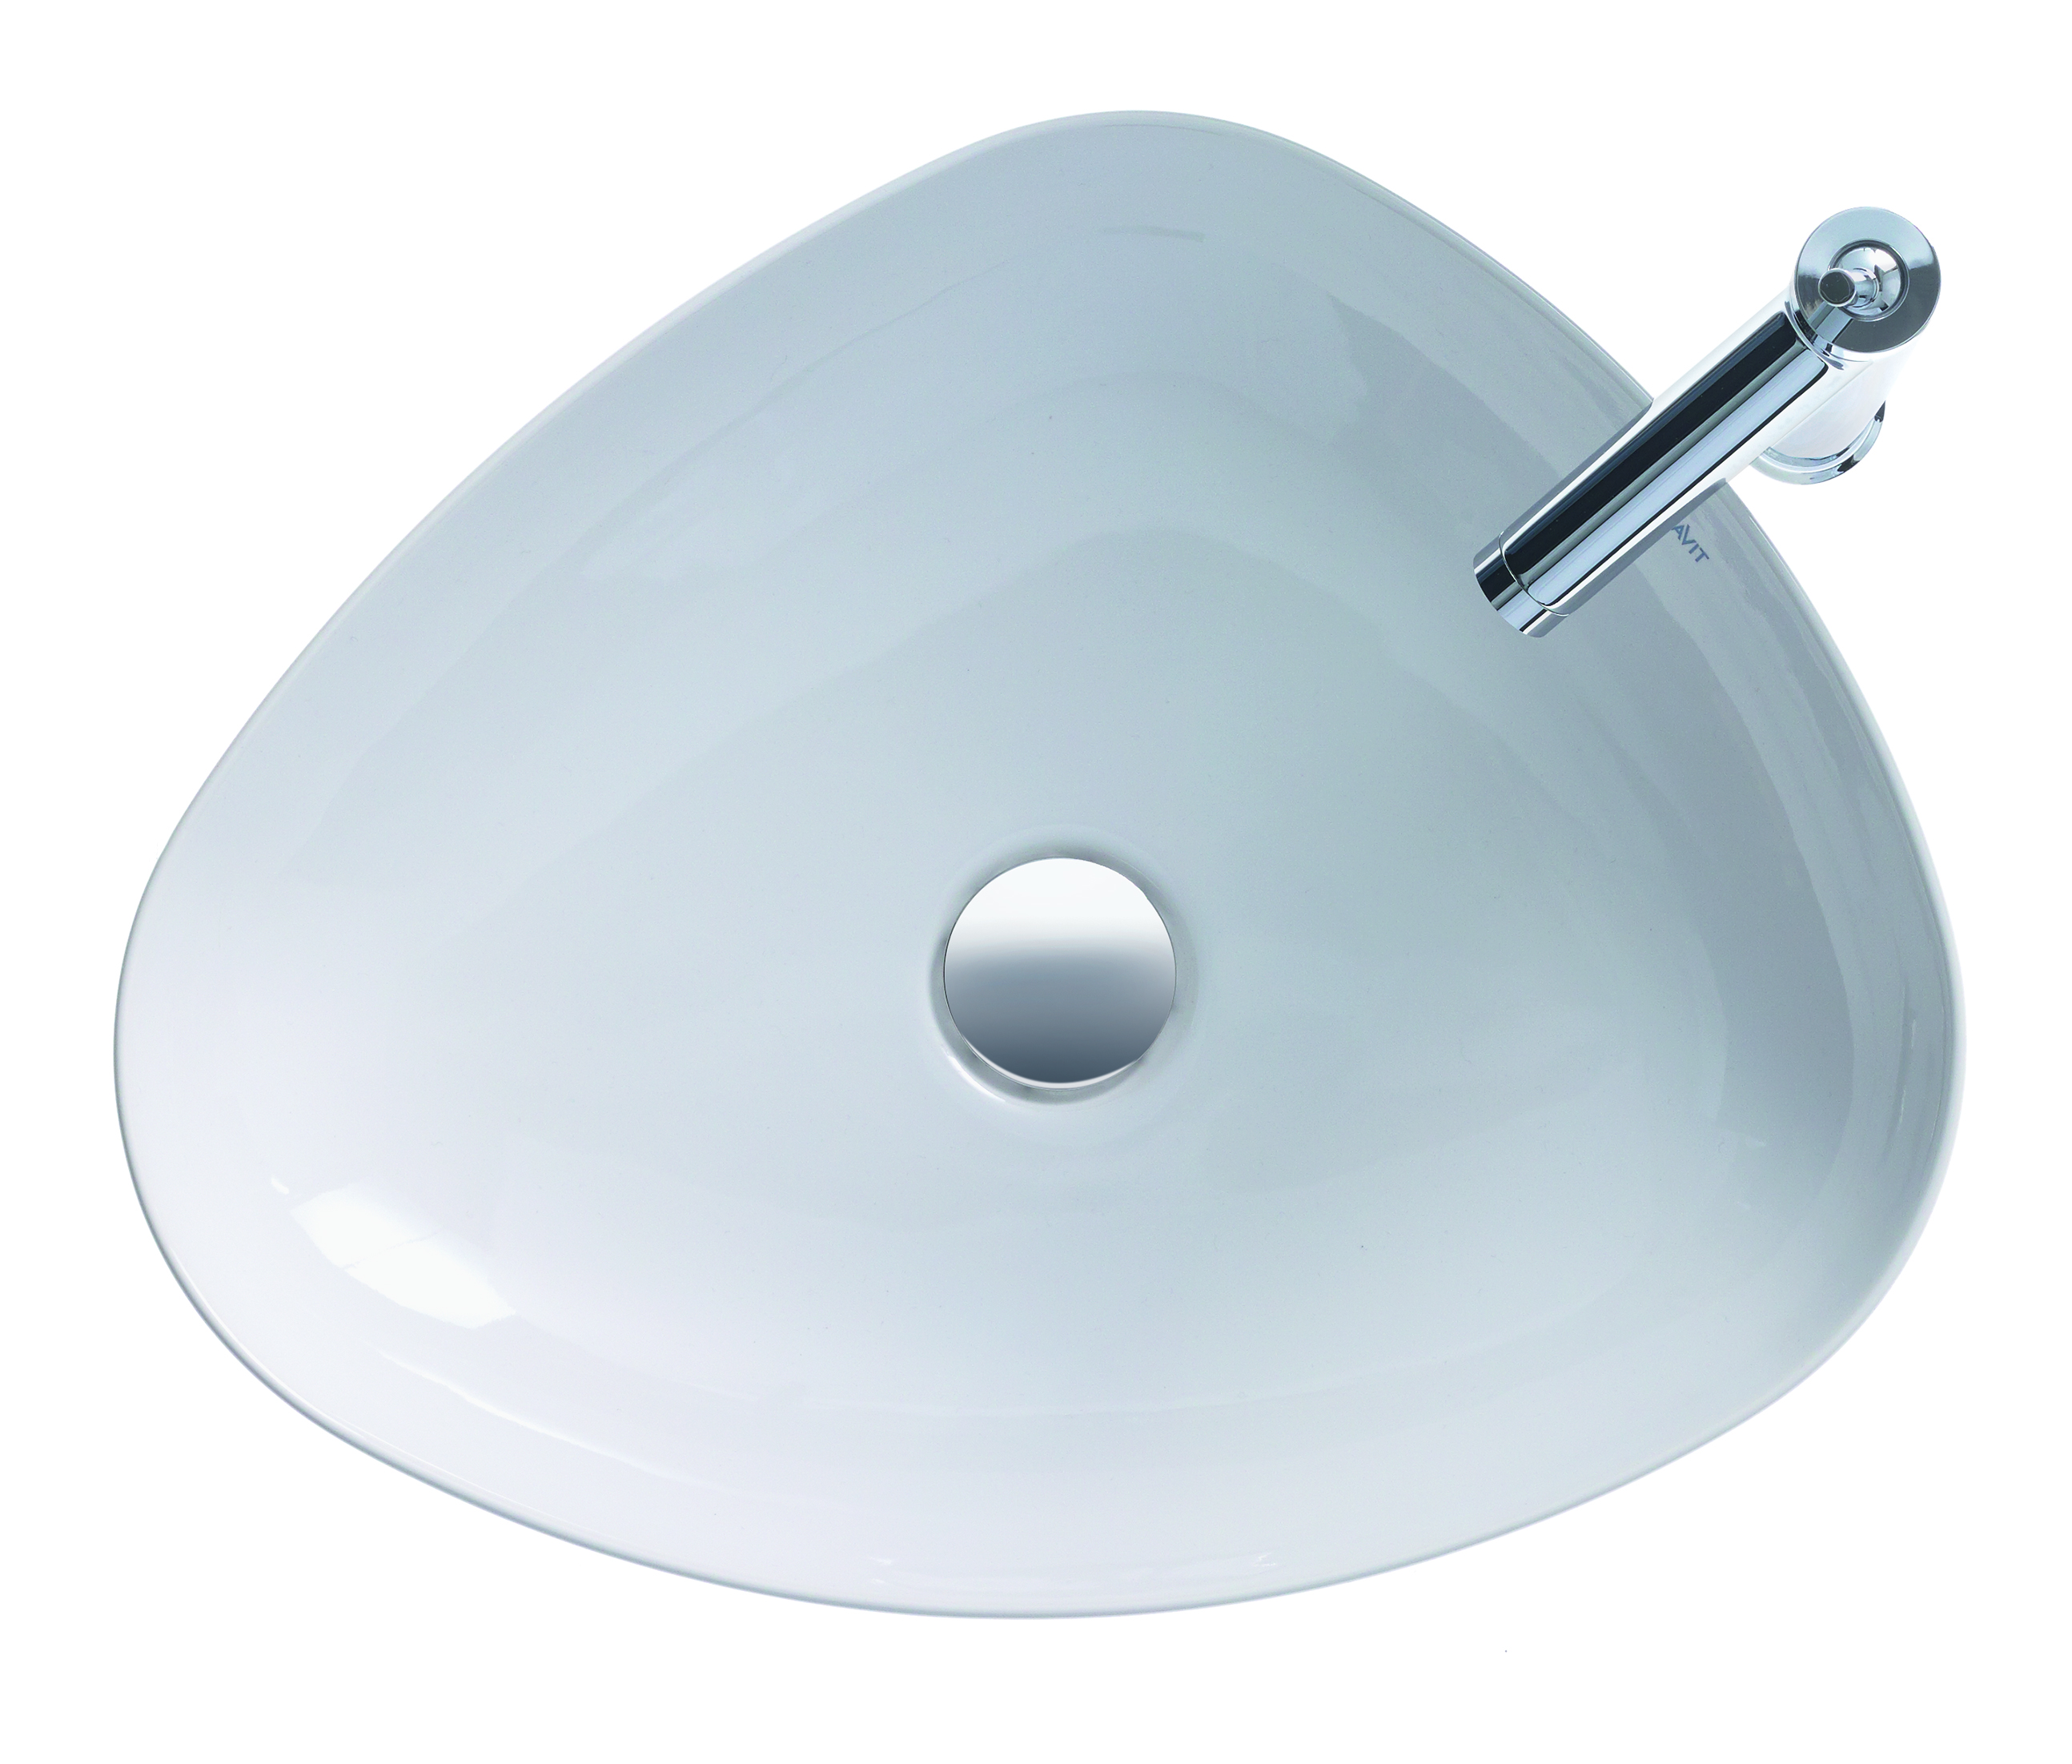 An innovative design: Philippe Starck's Cape Cod washbowl - Philippe Starck innovative design